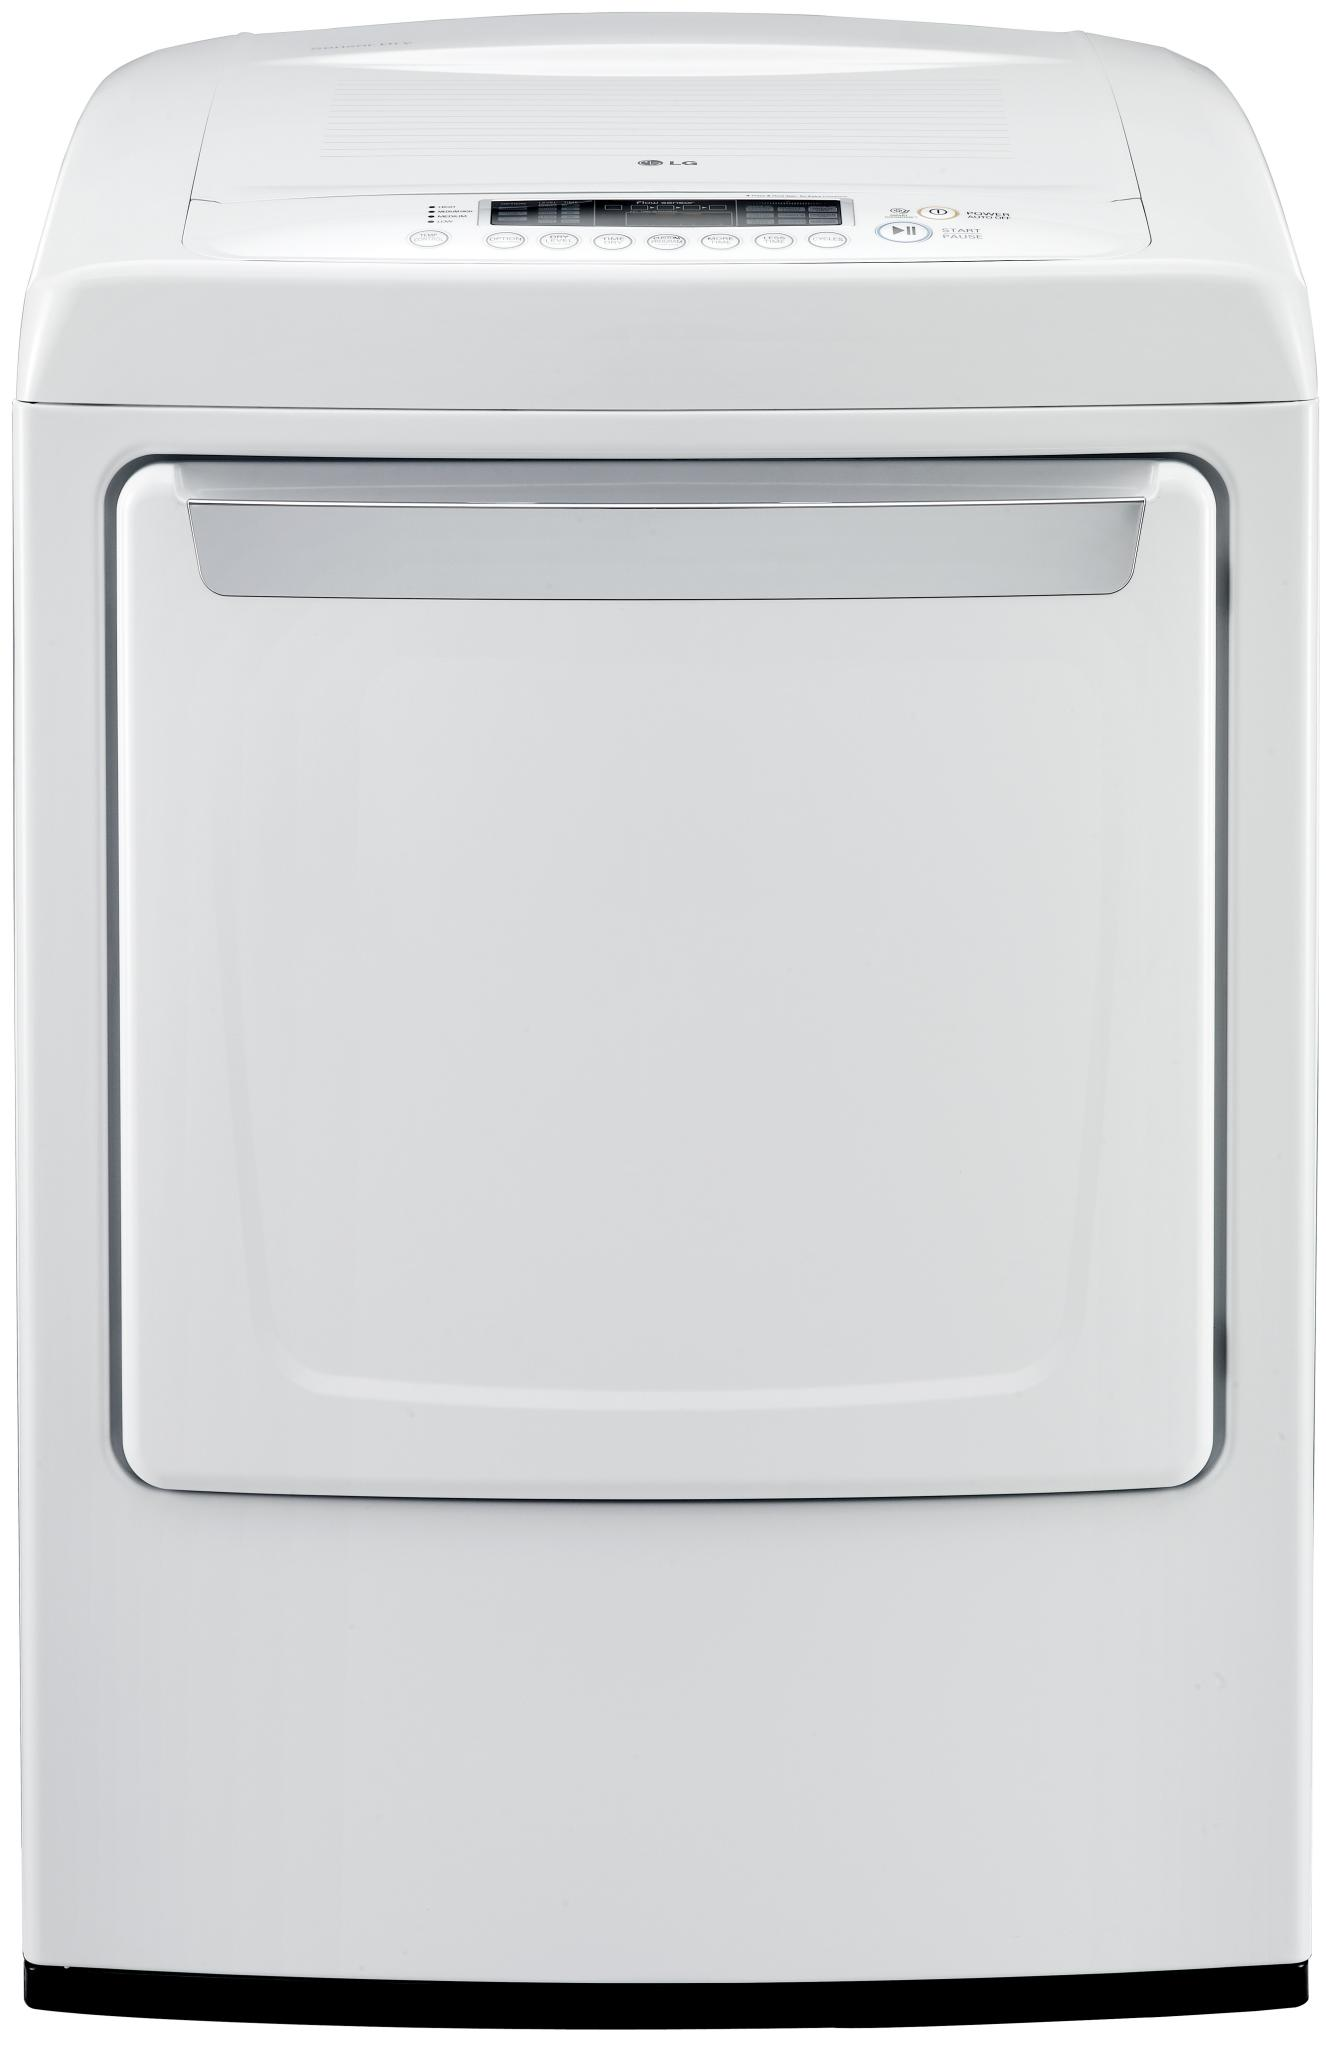 LG Appliances Gas Dryers 7.3 Cu. Ft. Front-Load Gas Dryer - Item Number: DLG1102W